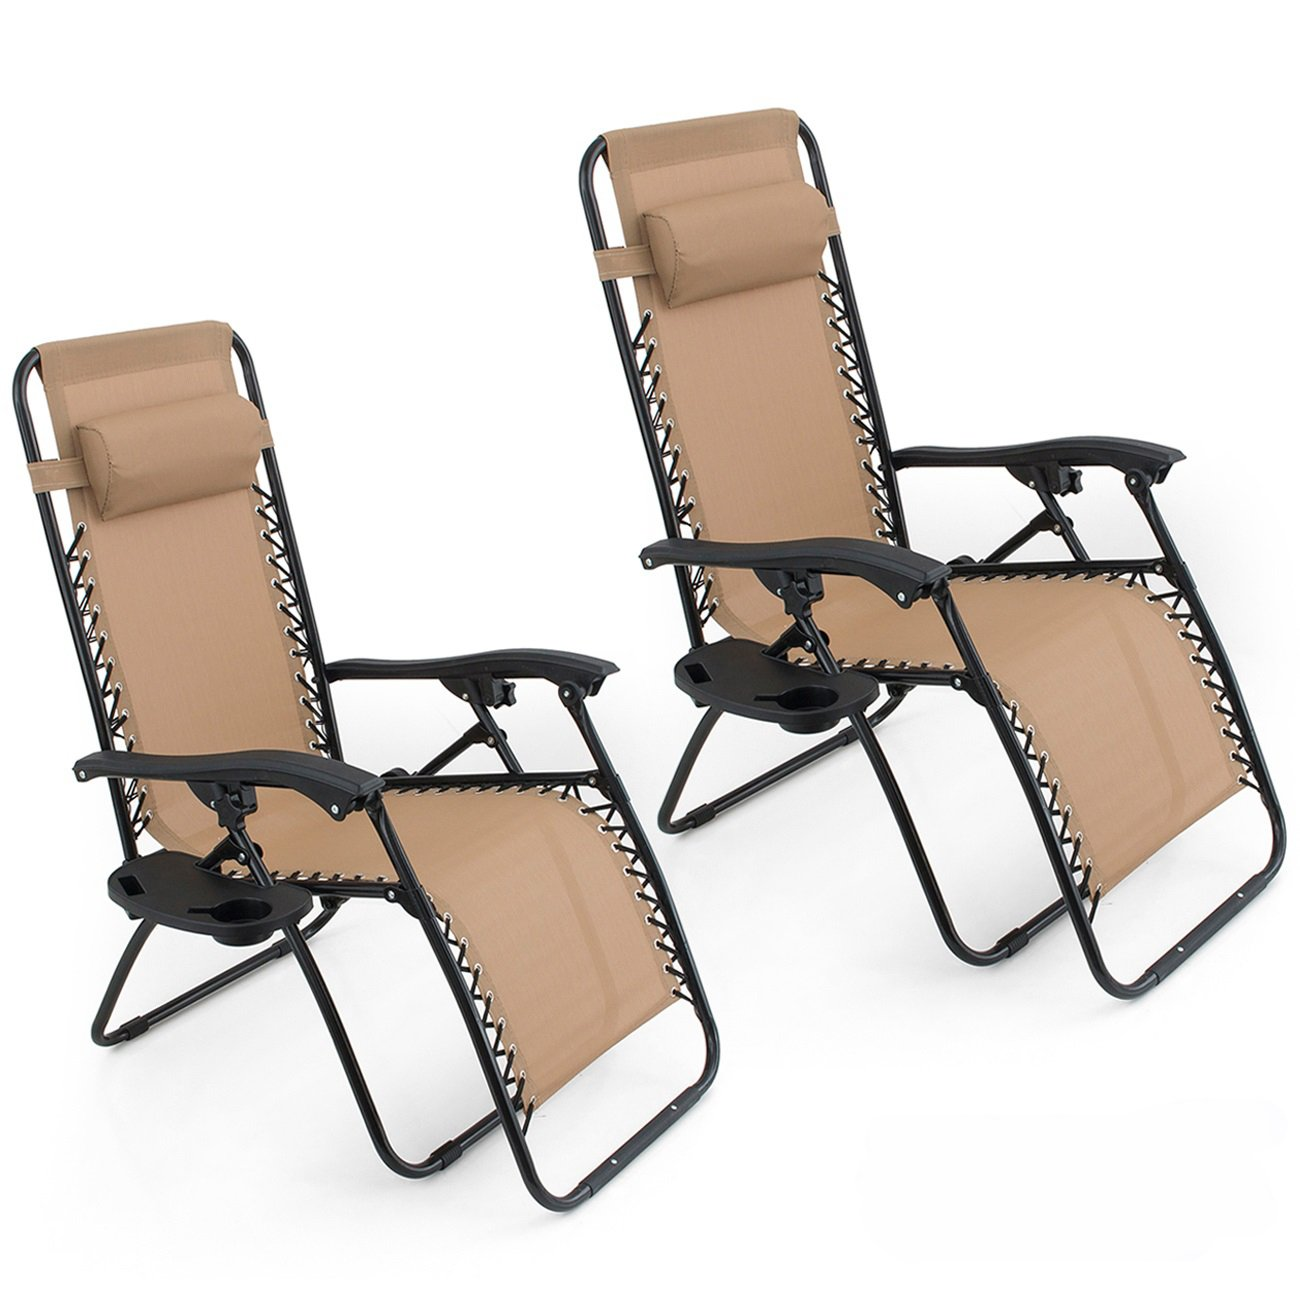 Belleze Set of 2 Anti Zero Gravity Chairs w Tray Cup Holder Rust Resistant Lightweight Patio Garden Chair, Beige